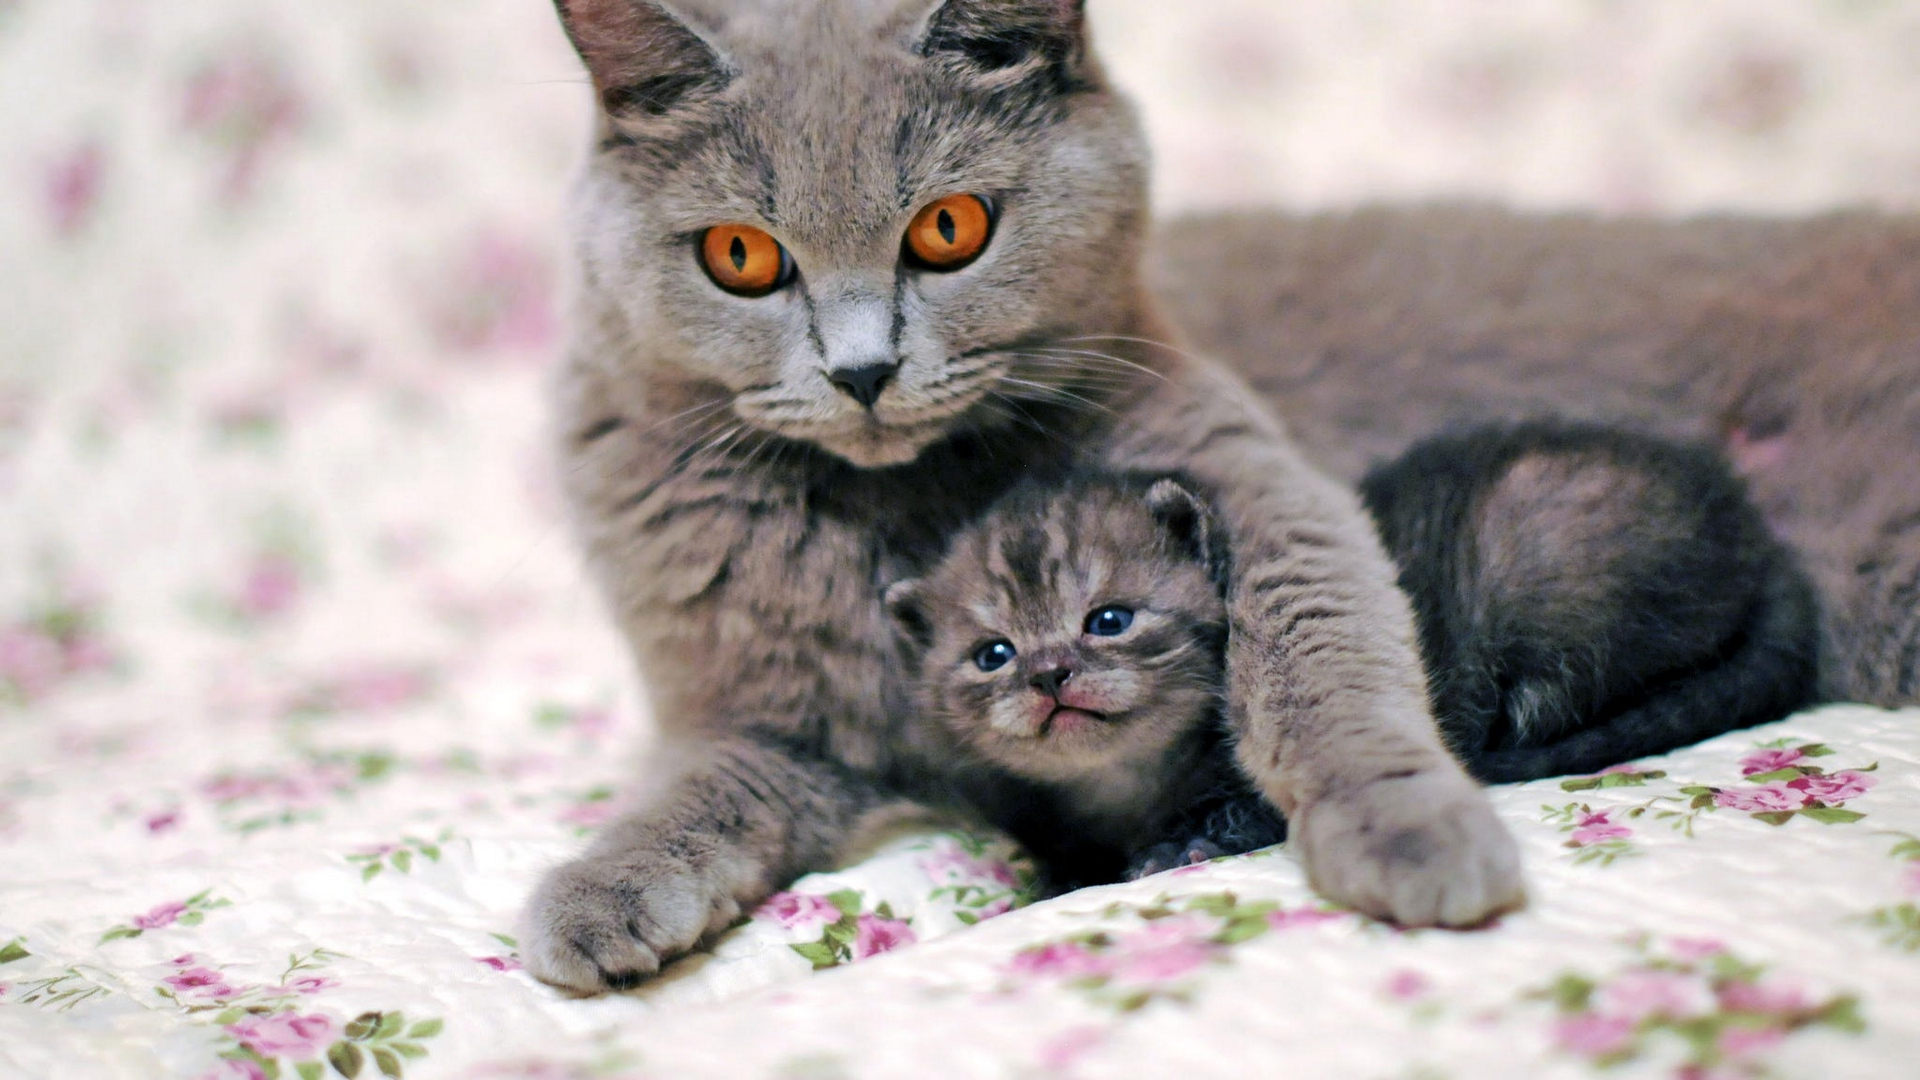 Cute Cat images for Mobile 7